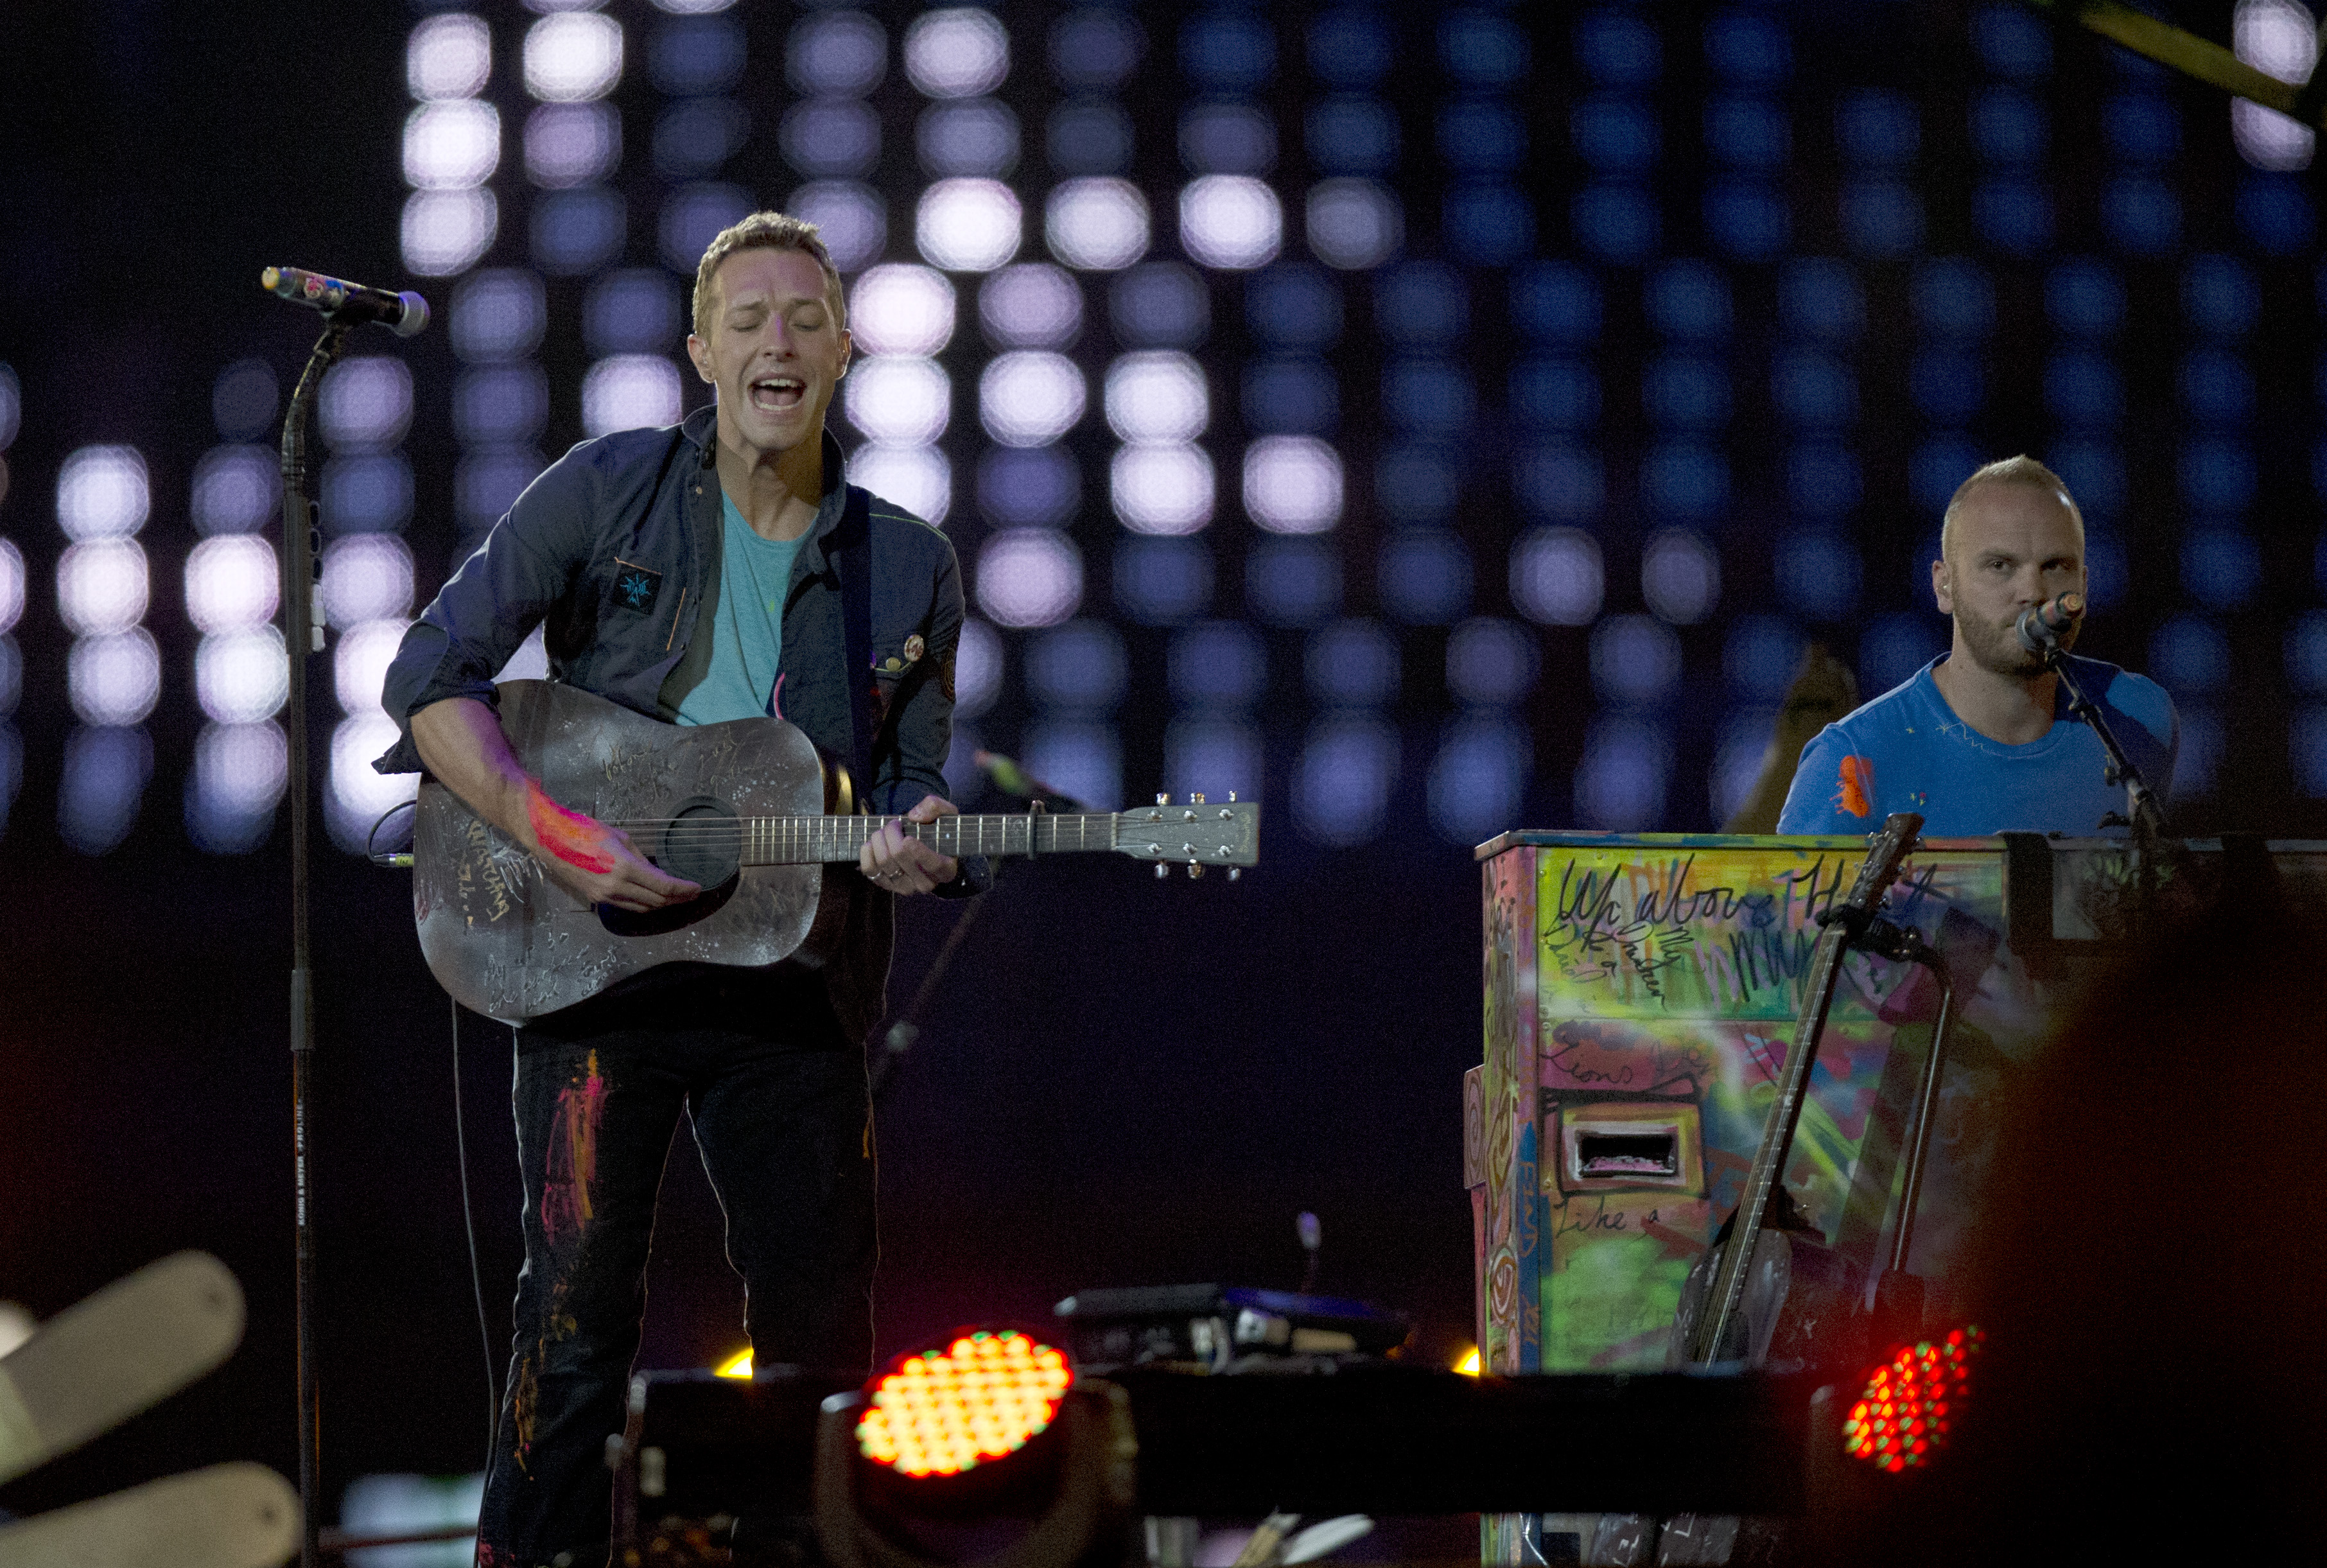 British rock band Coldplay entertain during the closing ceremony for the 2012 Paralympics games, Sunday, Sept. 9, 2012, in London. (AP Photo/Matt Dunham)